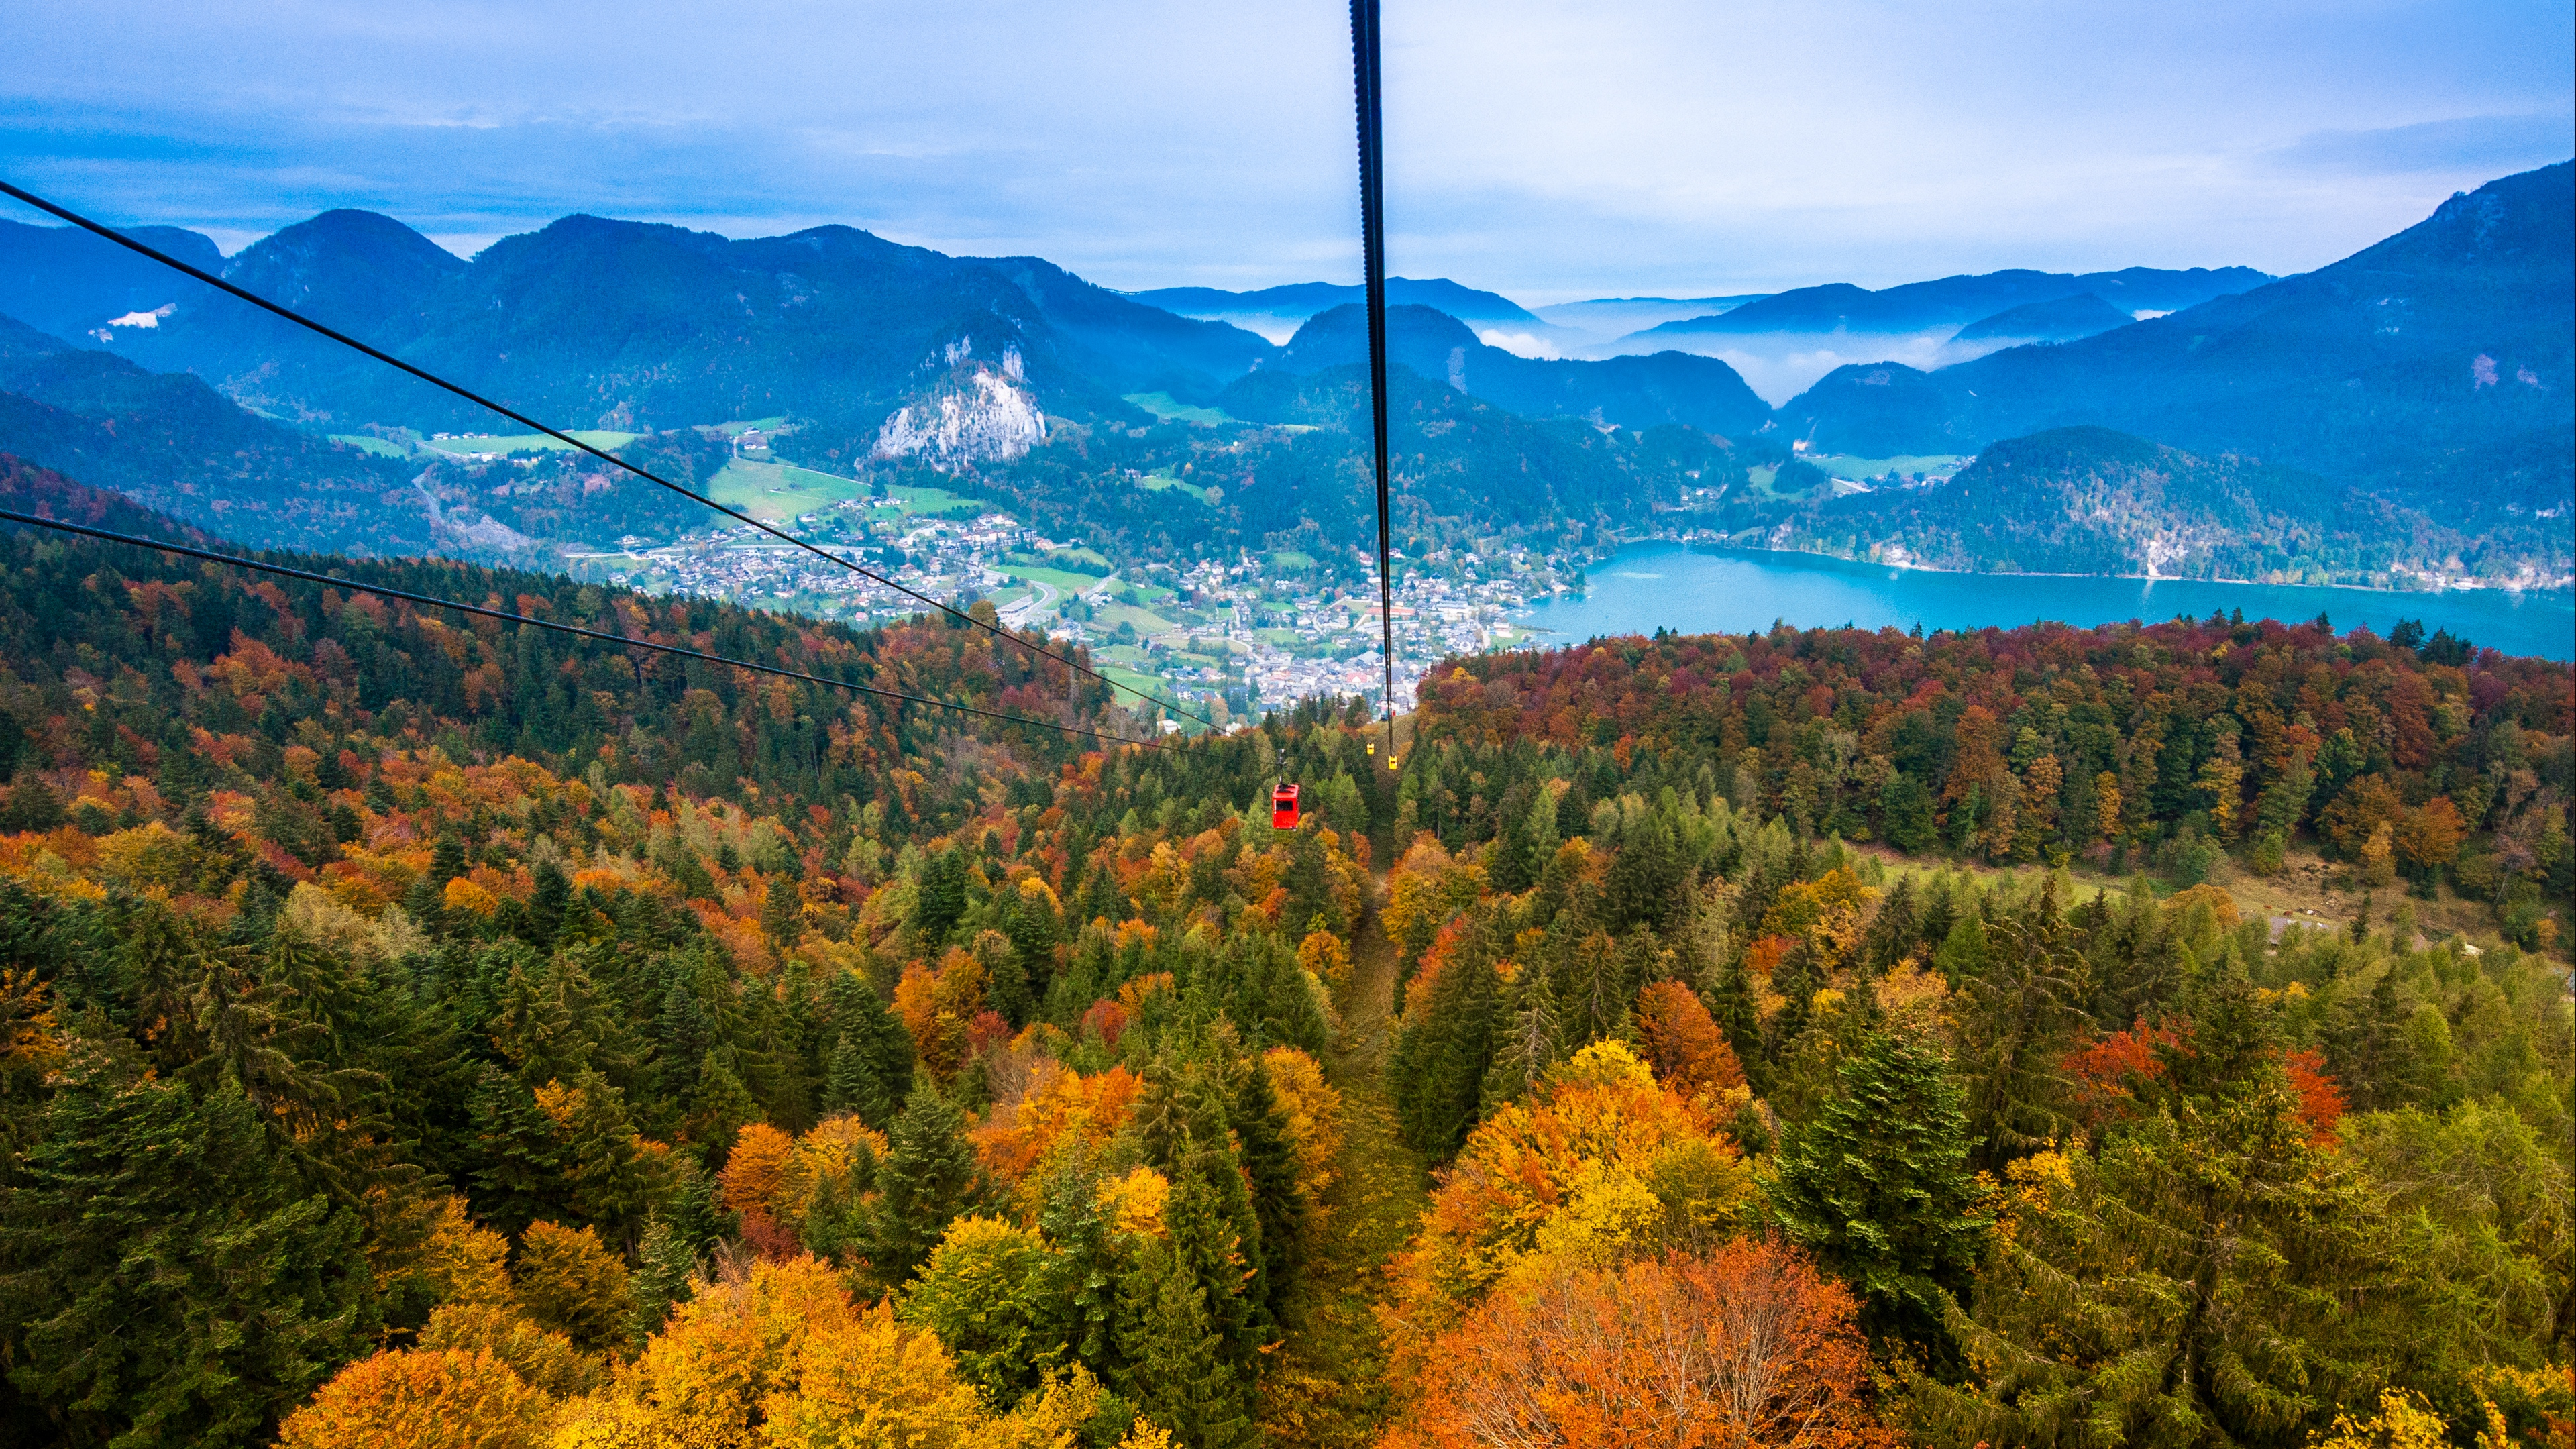 cable car view from above trees mountains autumn 4k 1541117256 - cable car, view from above, trees, mountains, autumn 4k - view from above, Trees, cable car